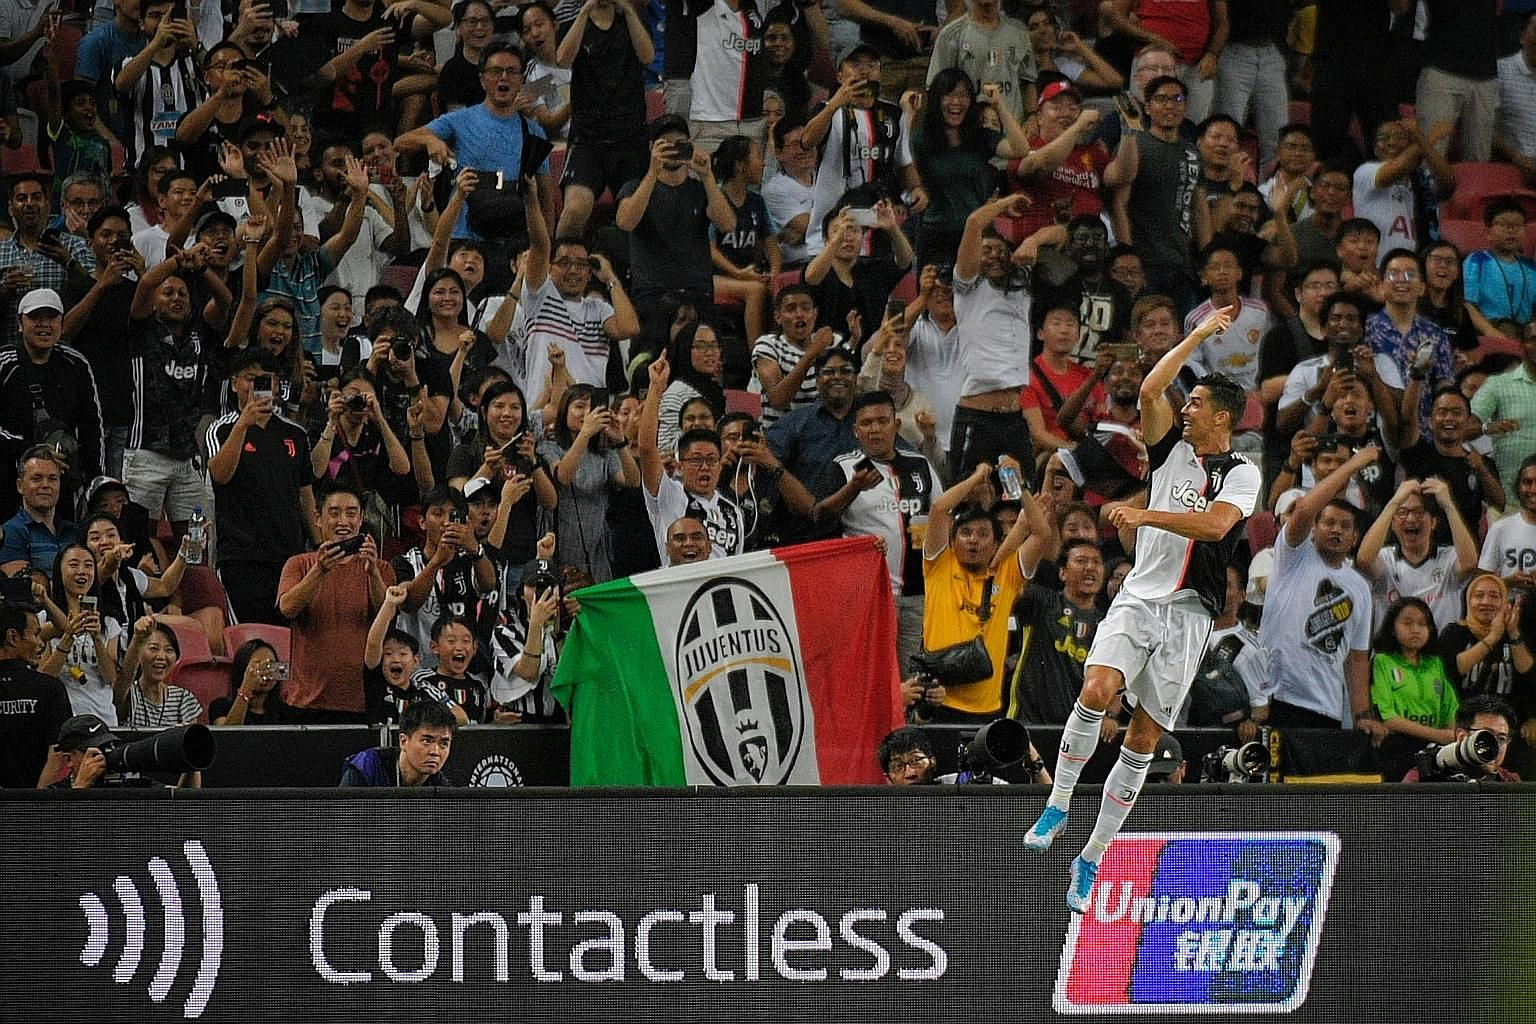 Juventus fans cheer as Portuguese superstar Cristiano Ronaldo does his trademark celebration after scoring against Tottenham during the International Champions Cup match at the National Stadium last night.